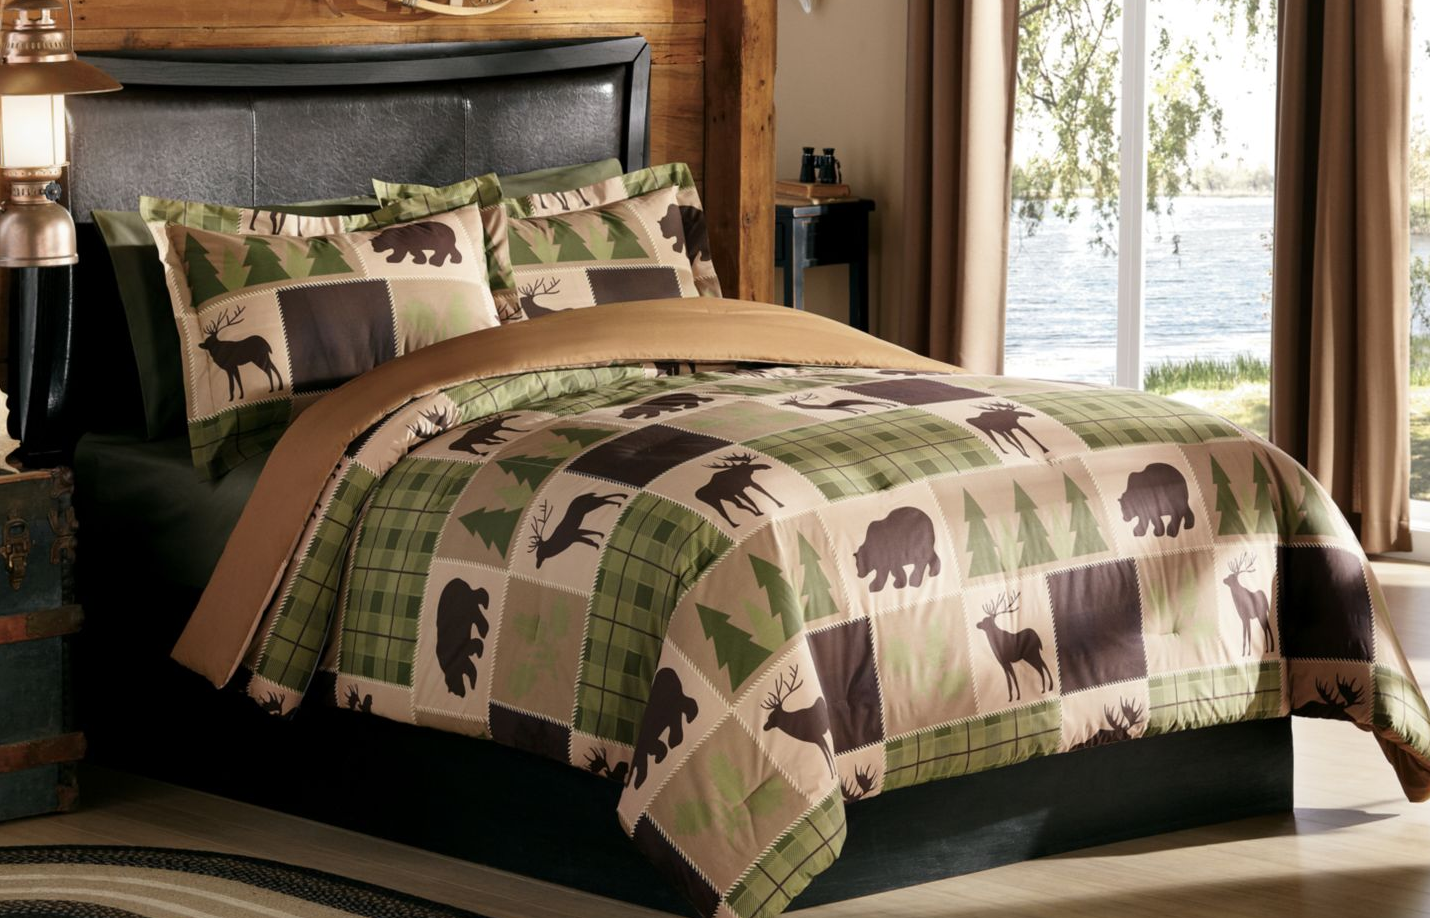 Rustic Patch ThreePiece Comforter Set from Cabela's